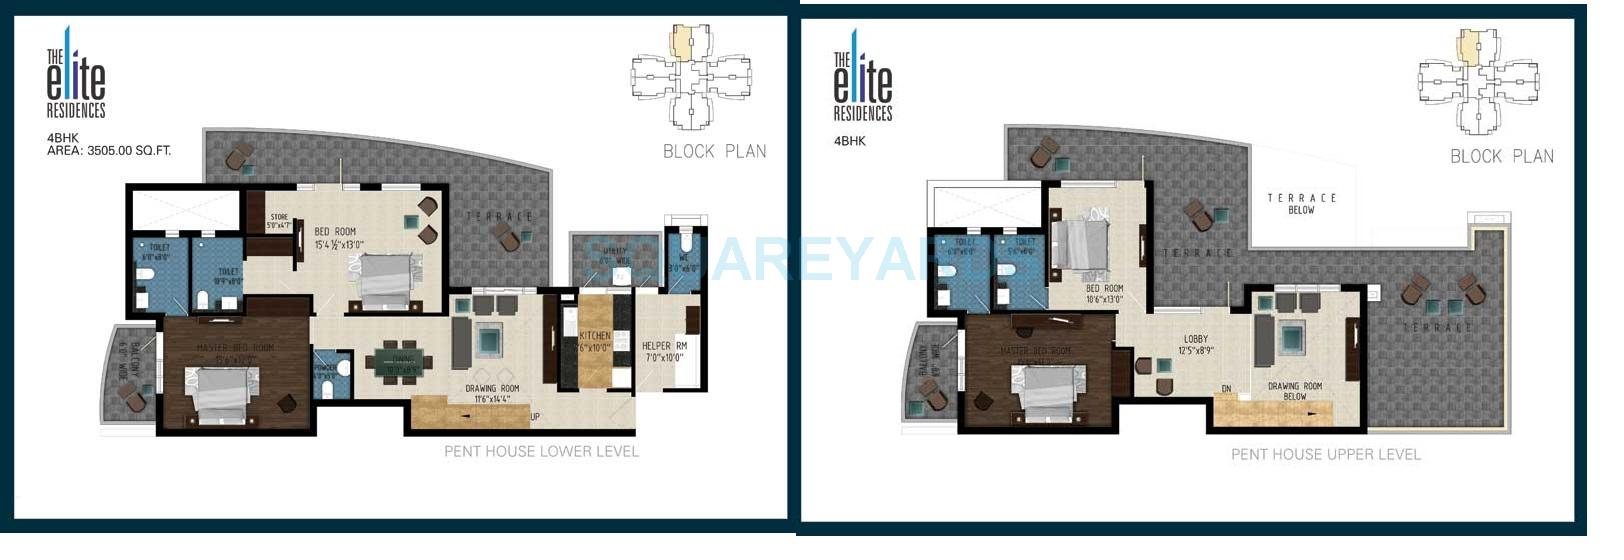 pareena the elite residences in sector 99 gurgaon project 4 bhk 3505 sq ft penthouse floor plan